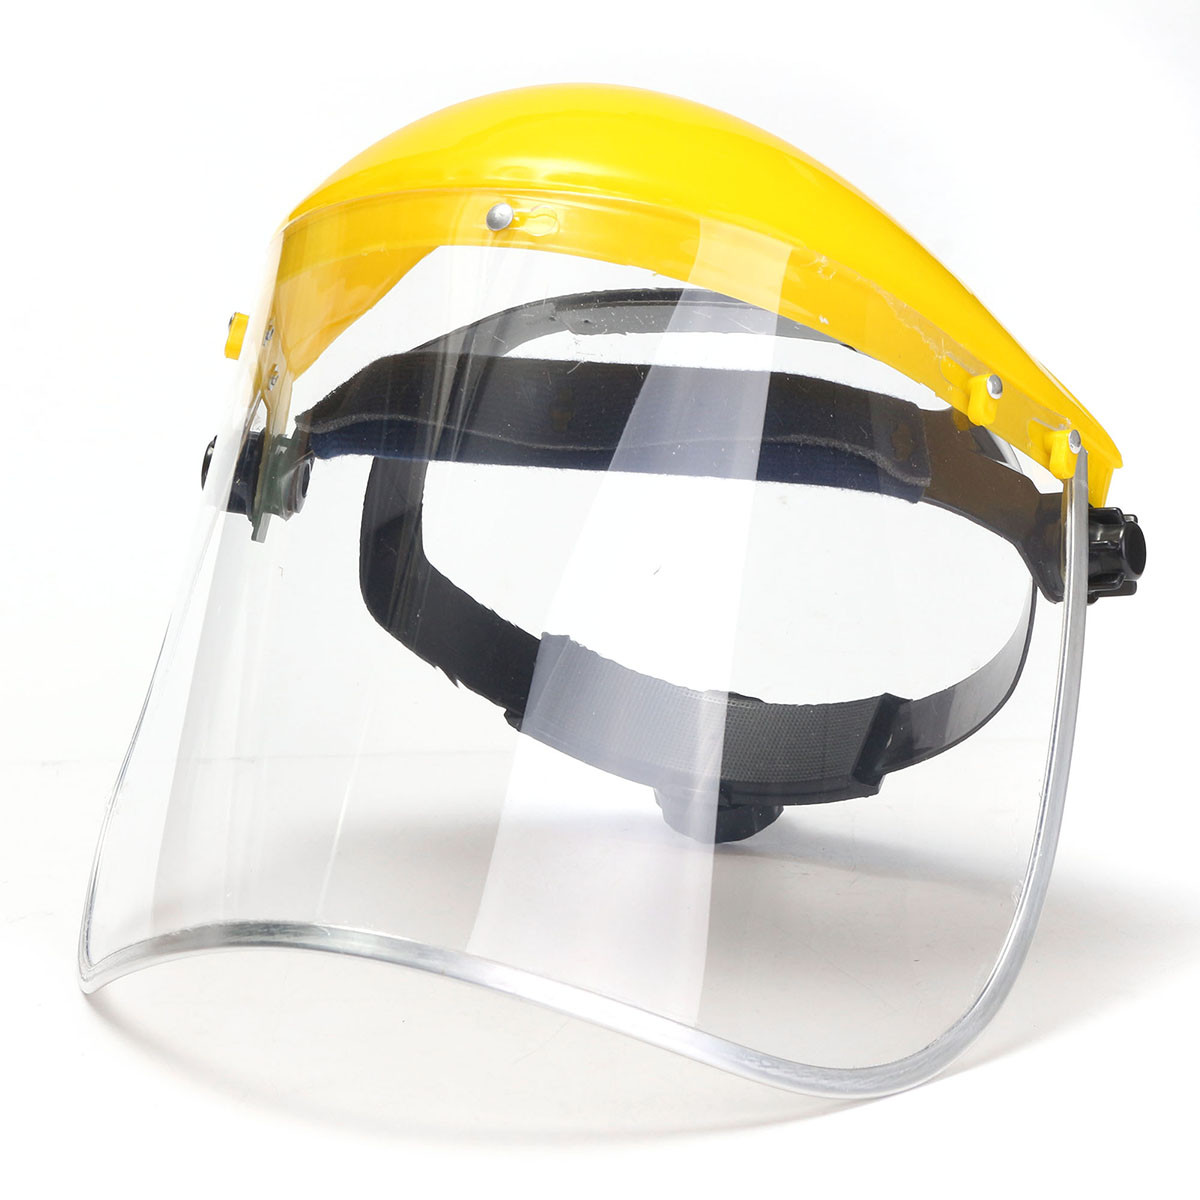 Transparent PVC Safety Faces Shields Screen Spare Visors For Head Mask Eye Faces Protection 33x20.3cmTransparent PVC Safety Faces Shields Screen Spare Visors For Head Mask Eye Faces Protection 33x20.3cm